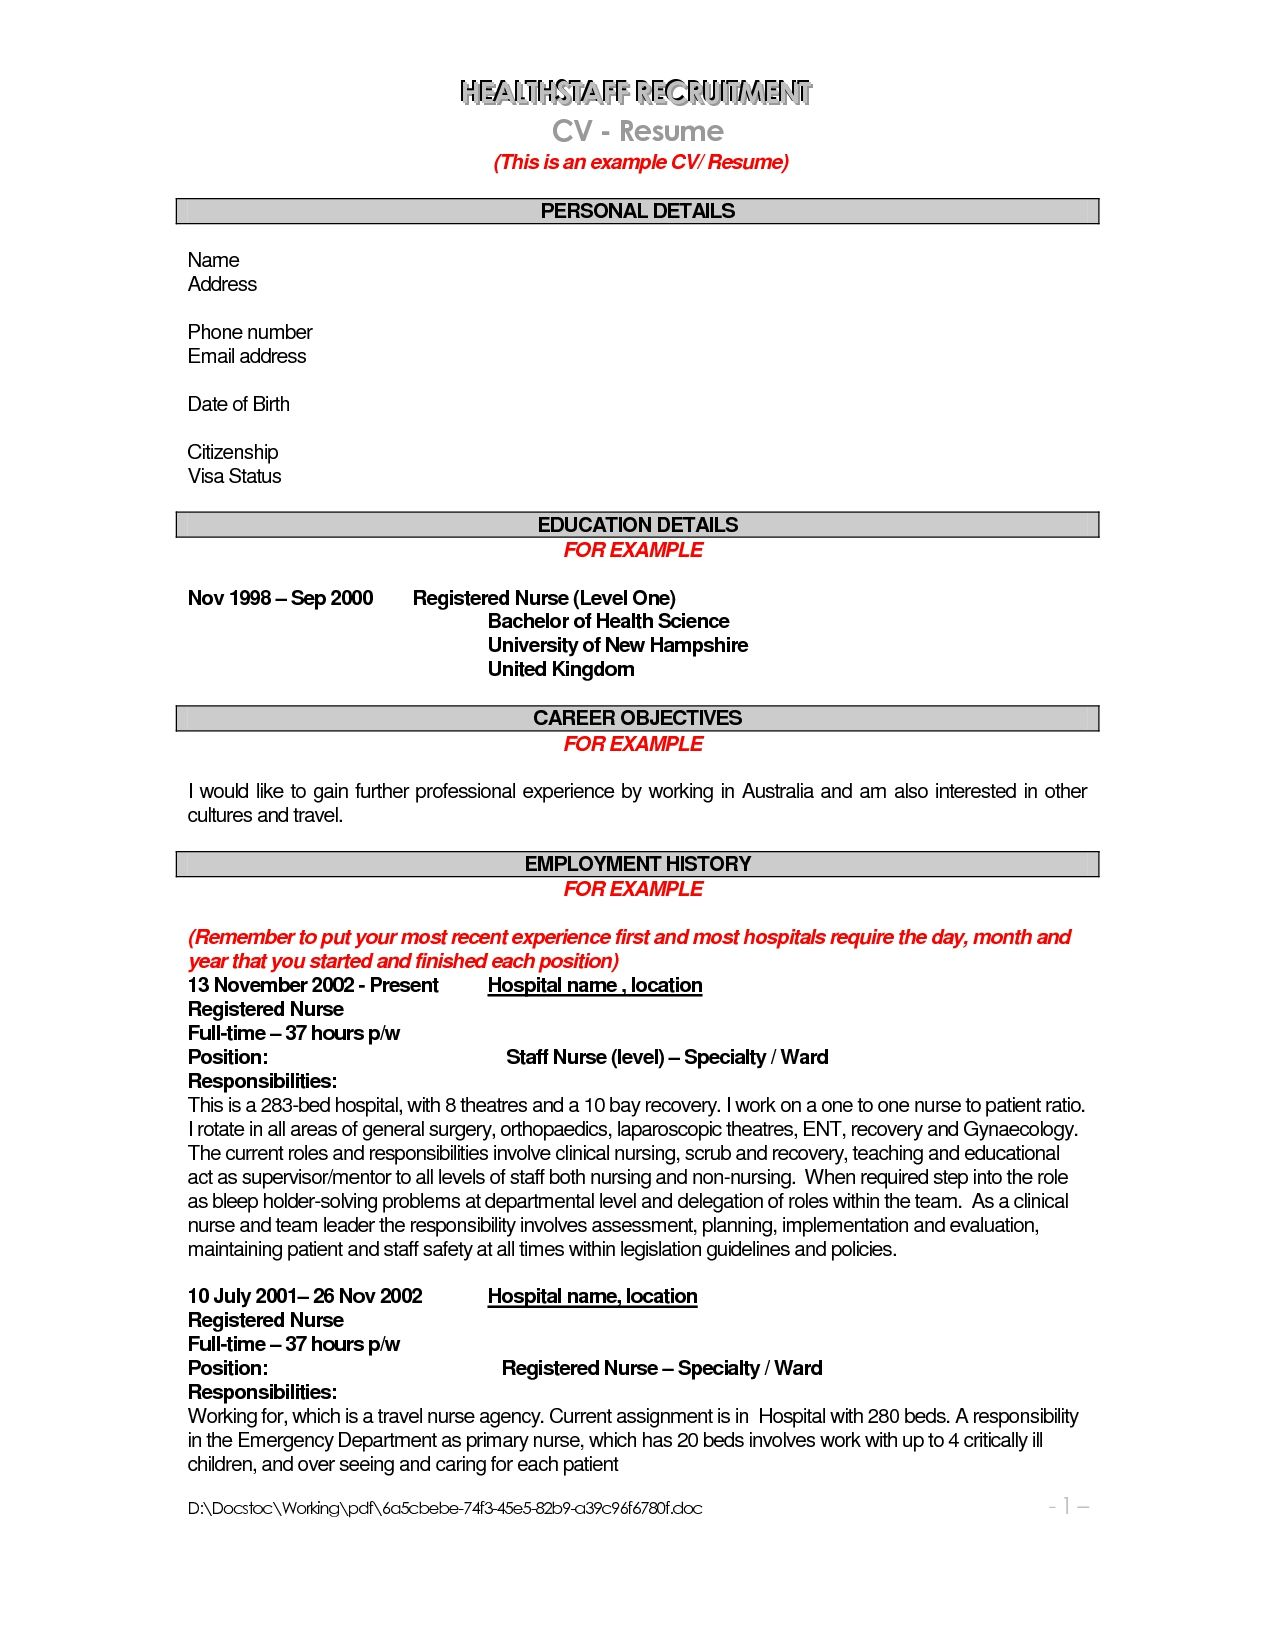 Resume Job Description Cover Letter Template Sample Resumes